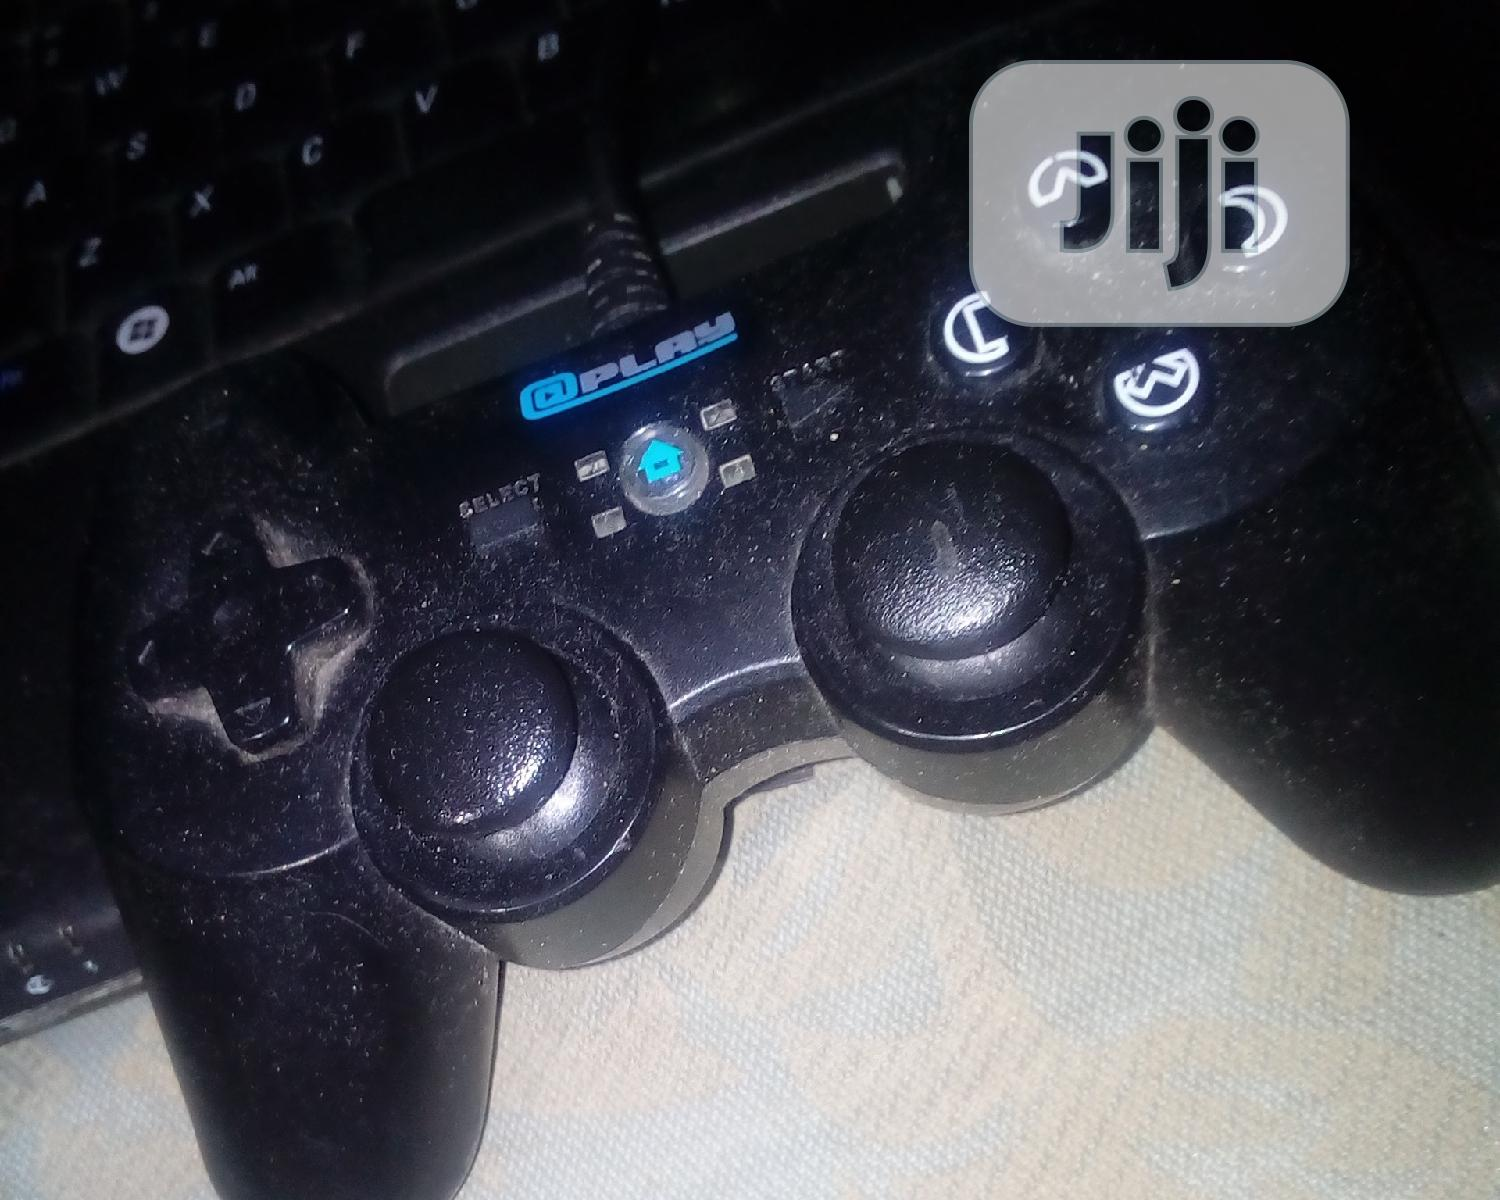 One Xbox Game Pad